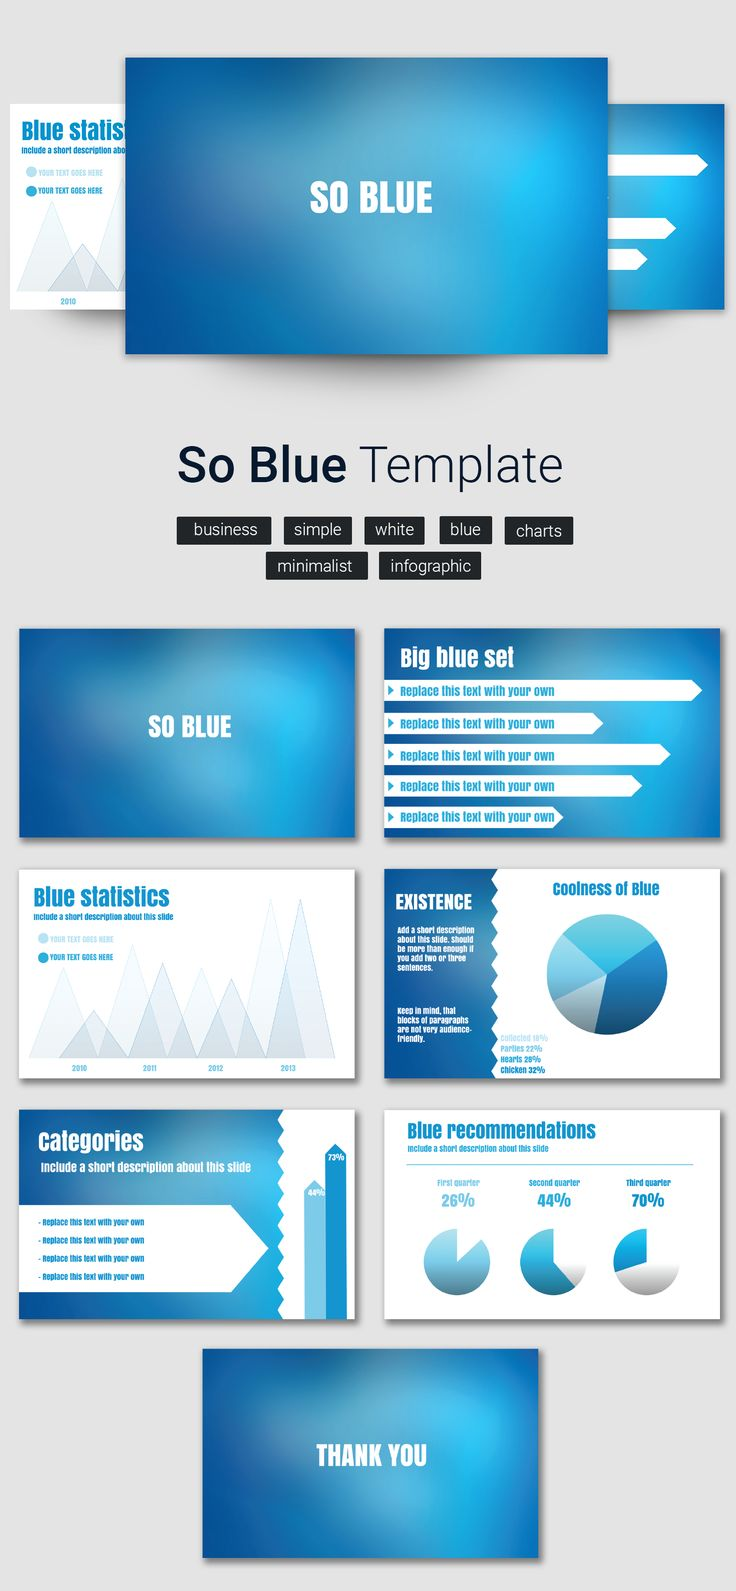 Want to boost productivity? Choose a blue based color scheme for your slides.